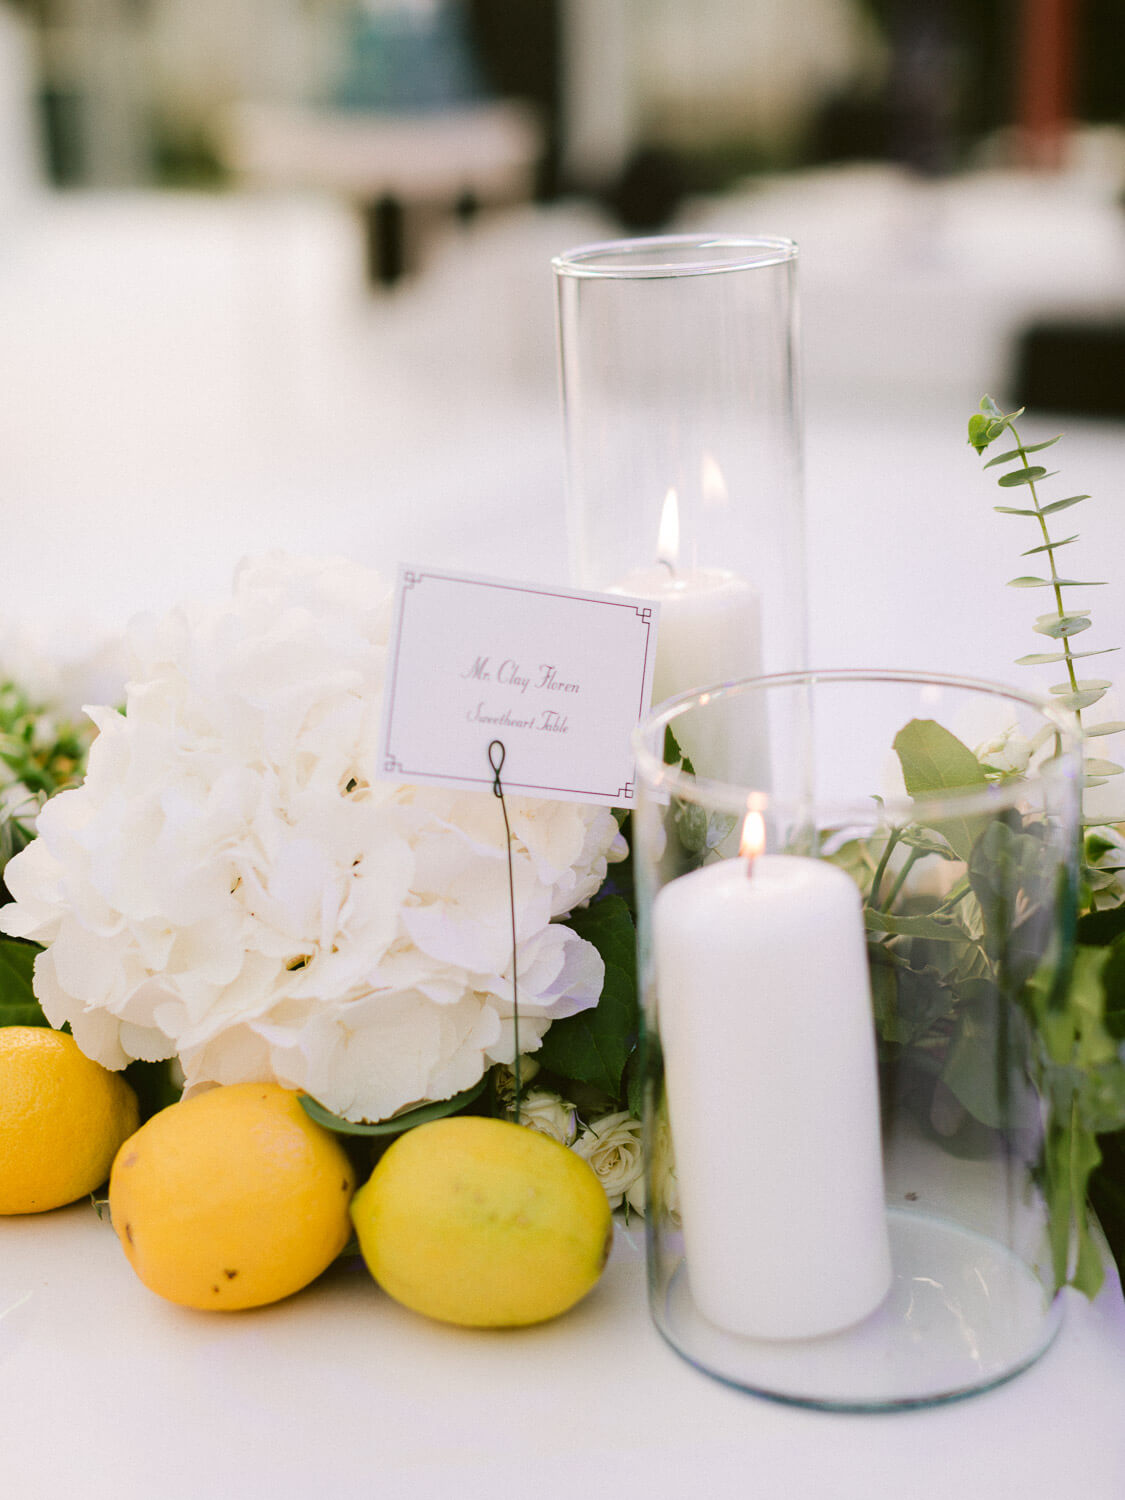 wedding reception table decorative detail in Seteais Palace Sintra by Portugal Wedding Photographer